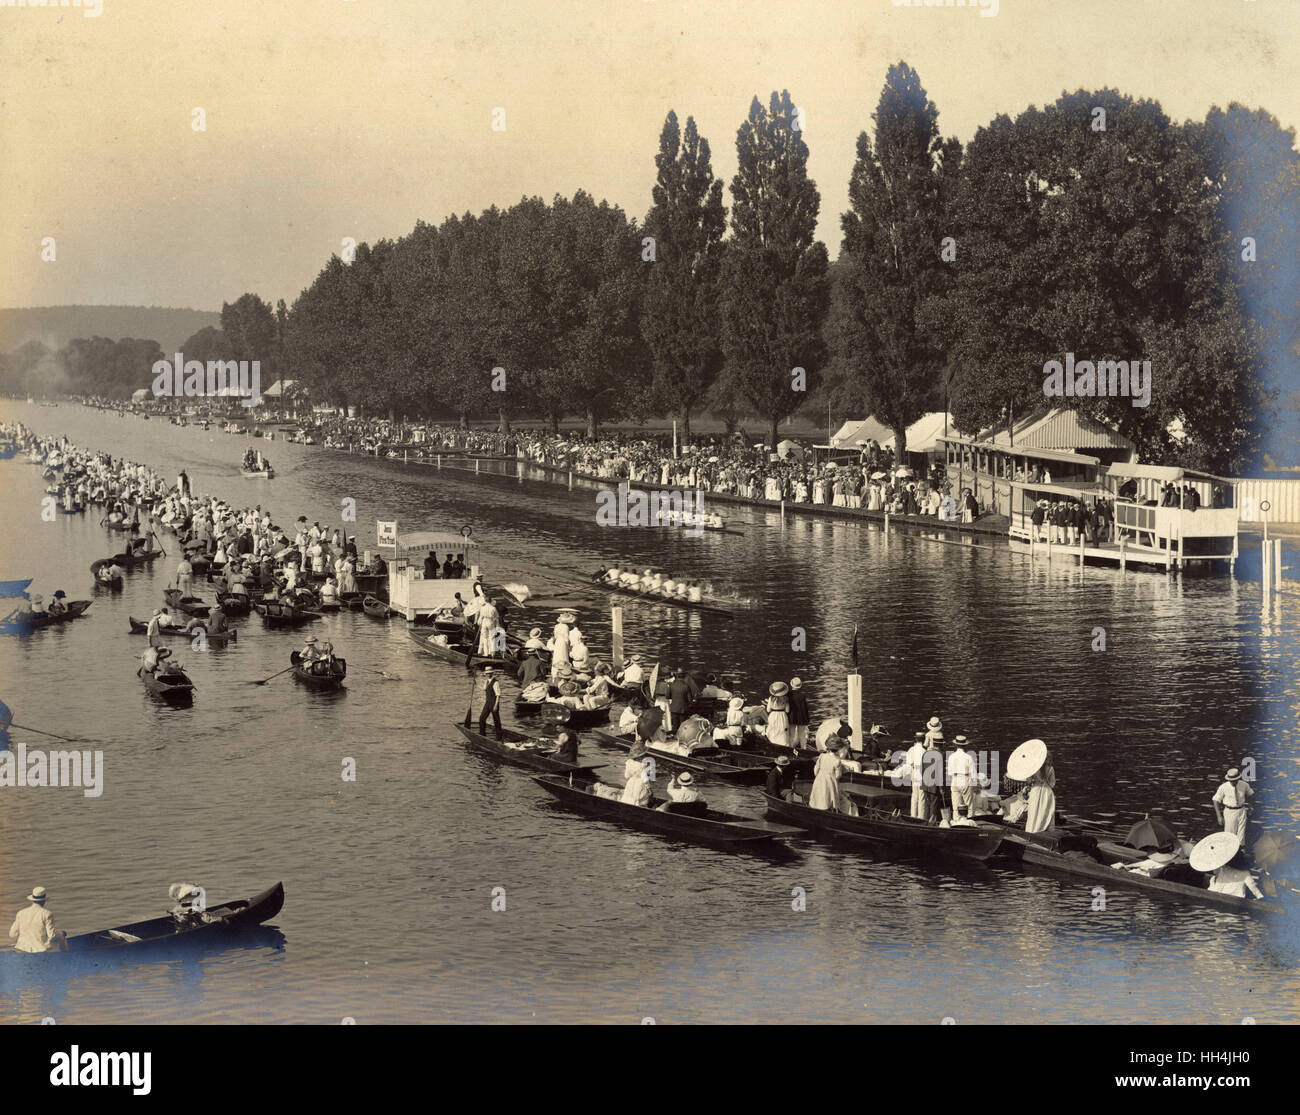 Rowing regatta on a summer's day. - Stock Image